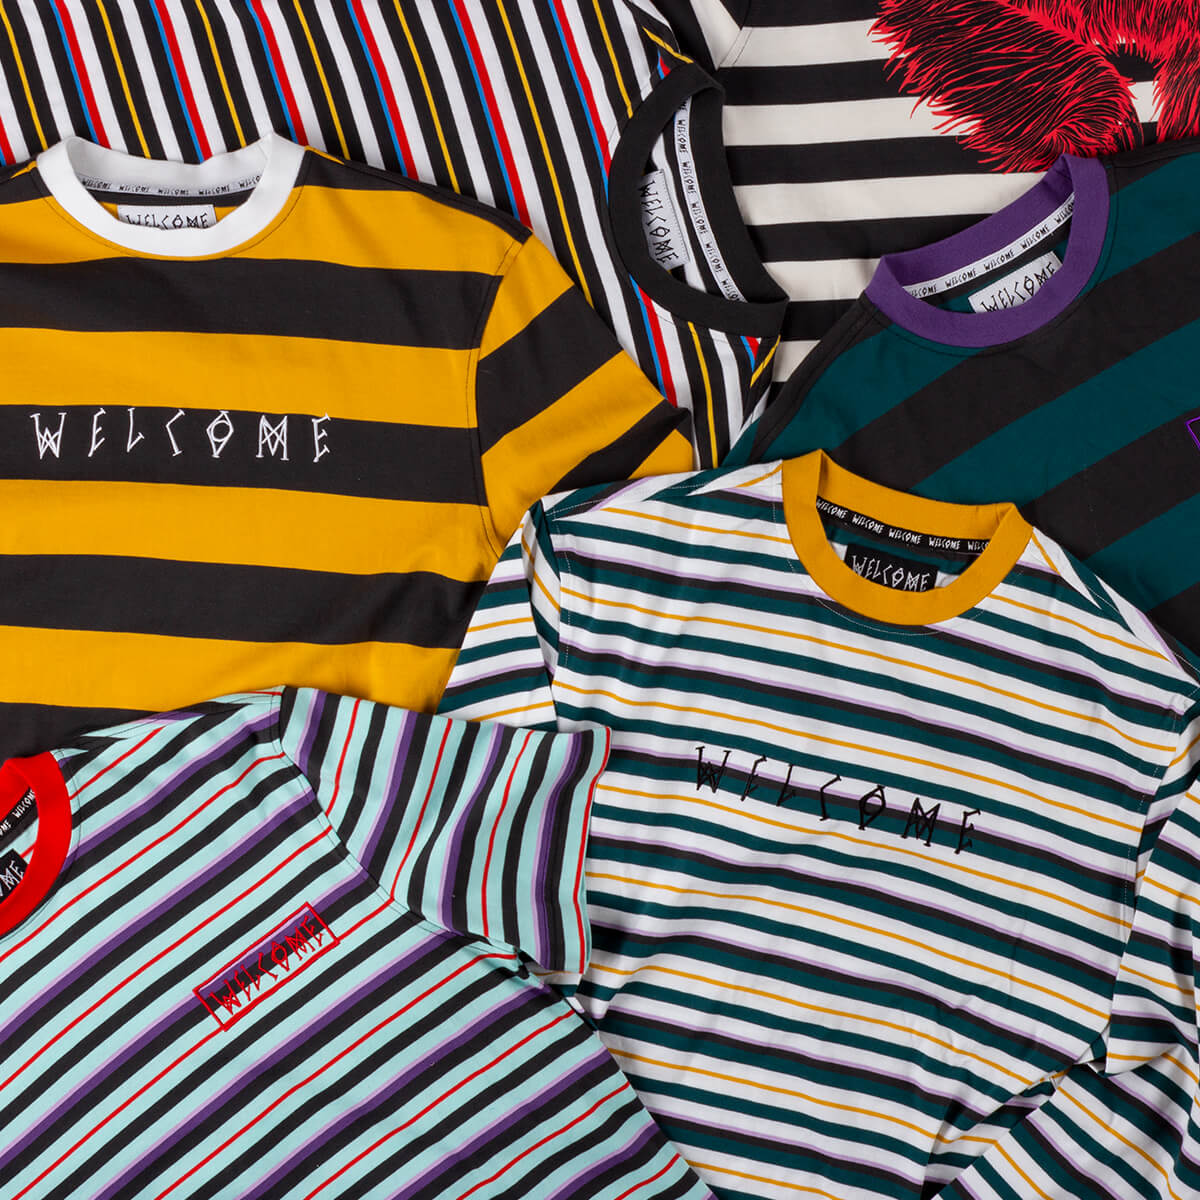 STRIPED TEE STYLES FEAT. WELCOME & MORE - SHOP NEW TEES